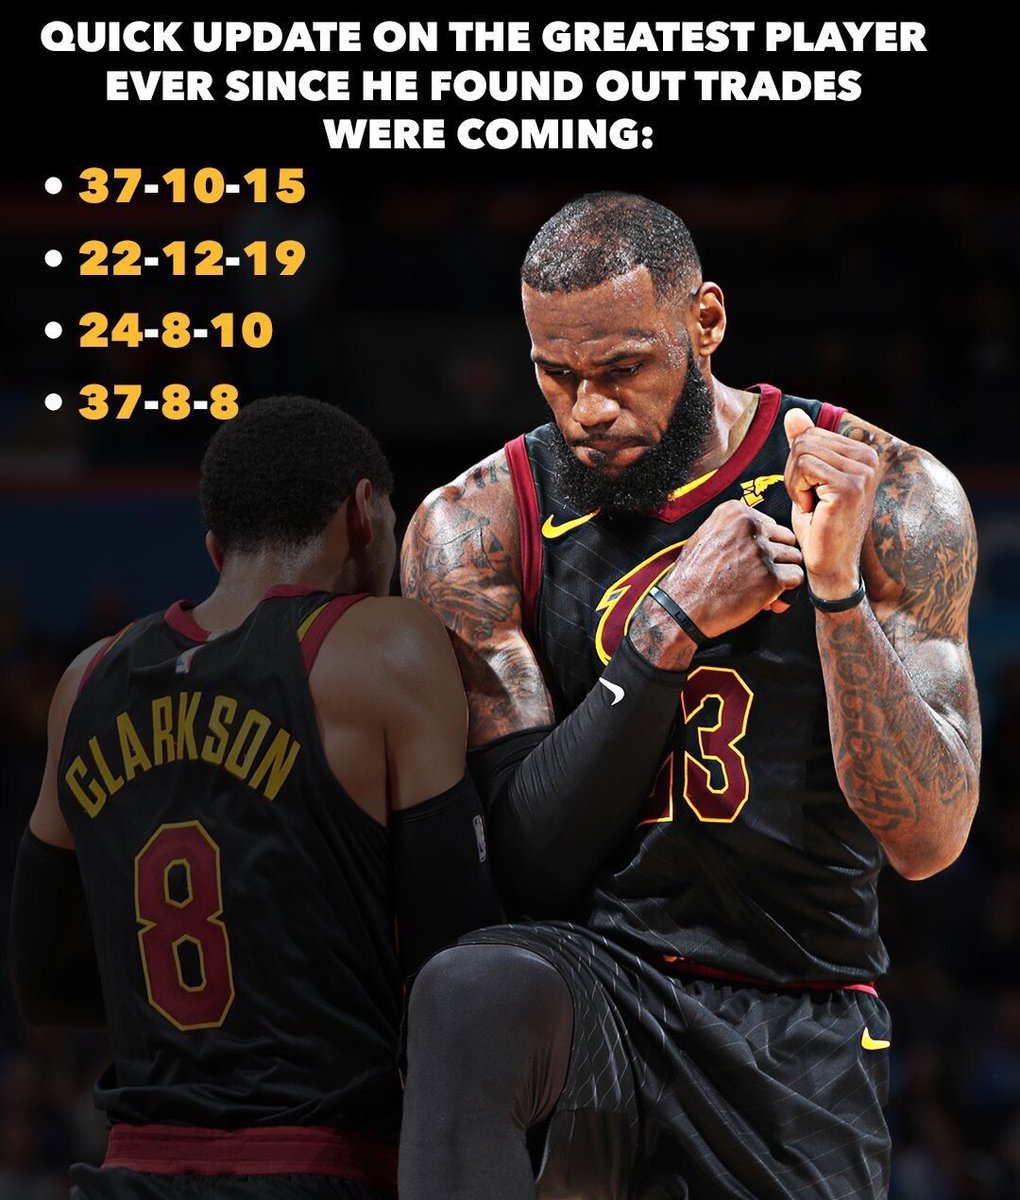 4-Game WIN Streak During The Process .. https://t.co/5I789Rhviy